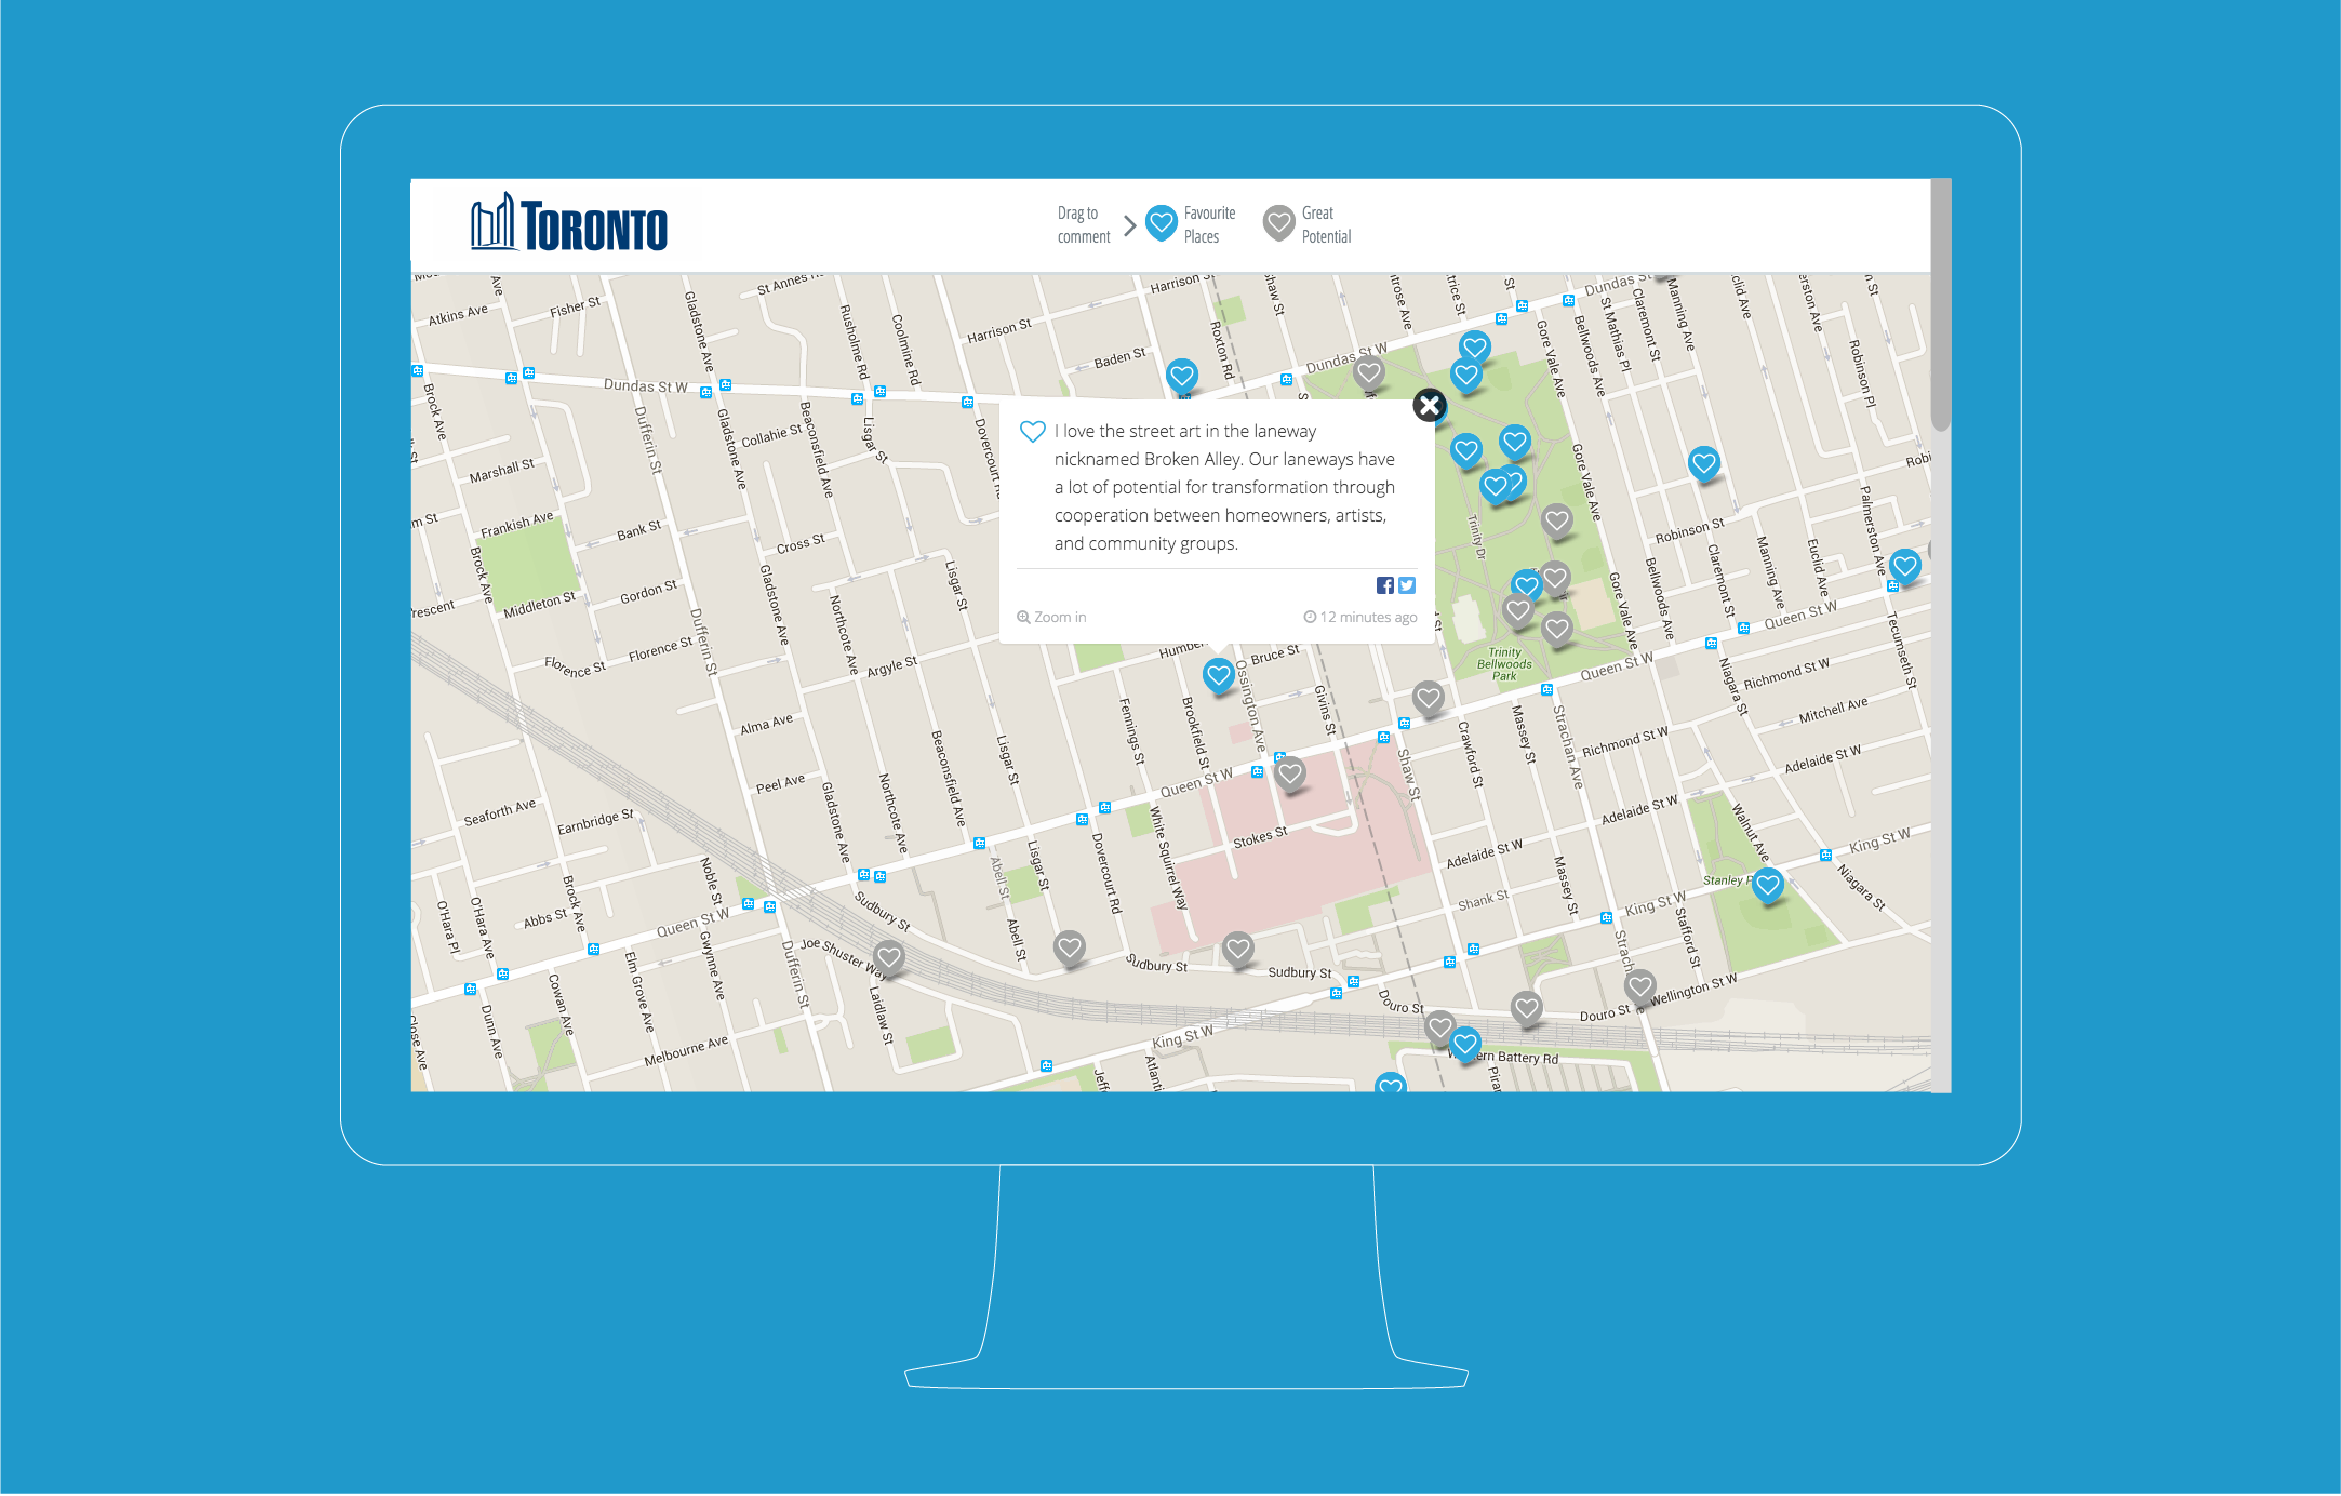 Screenshot of live consultation comment input mapping overlaid with the map of Toronto with comments pinned to specific locations.